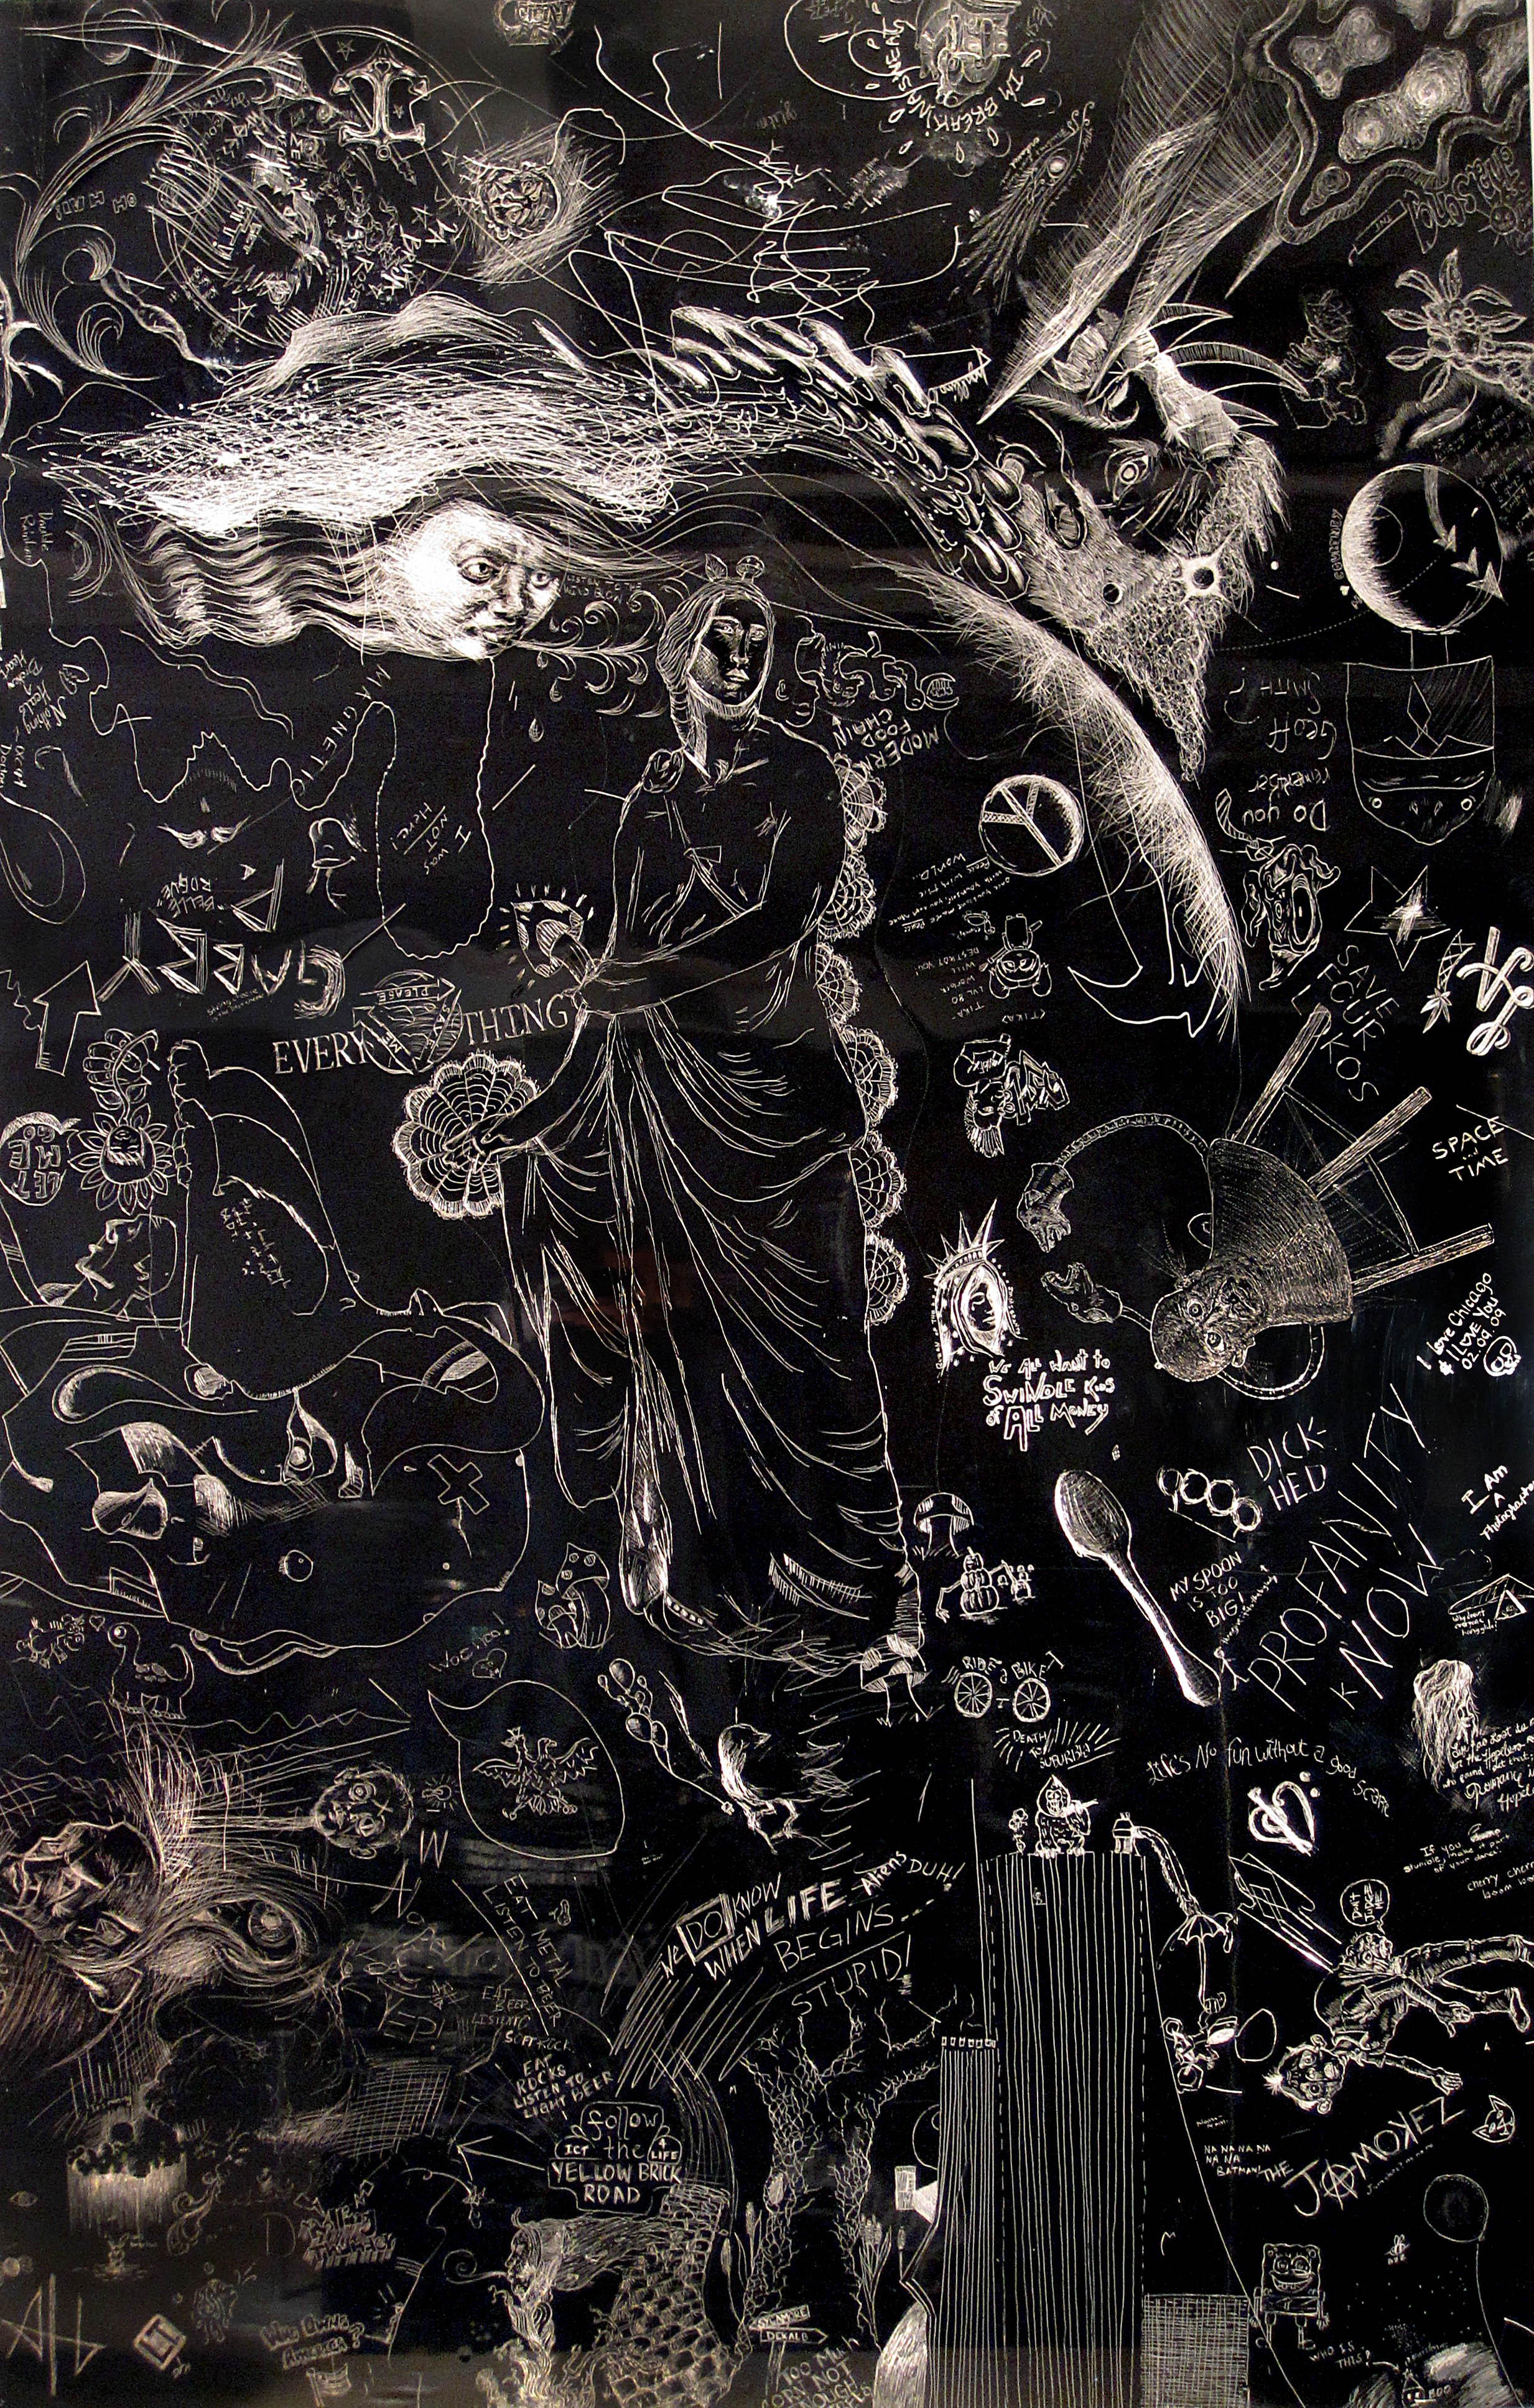 Fortuna, Incised aluminum with baked enamel finish , 48 X 60 inches